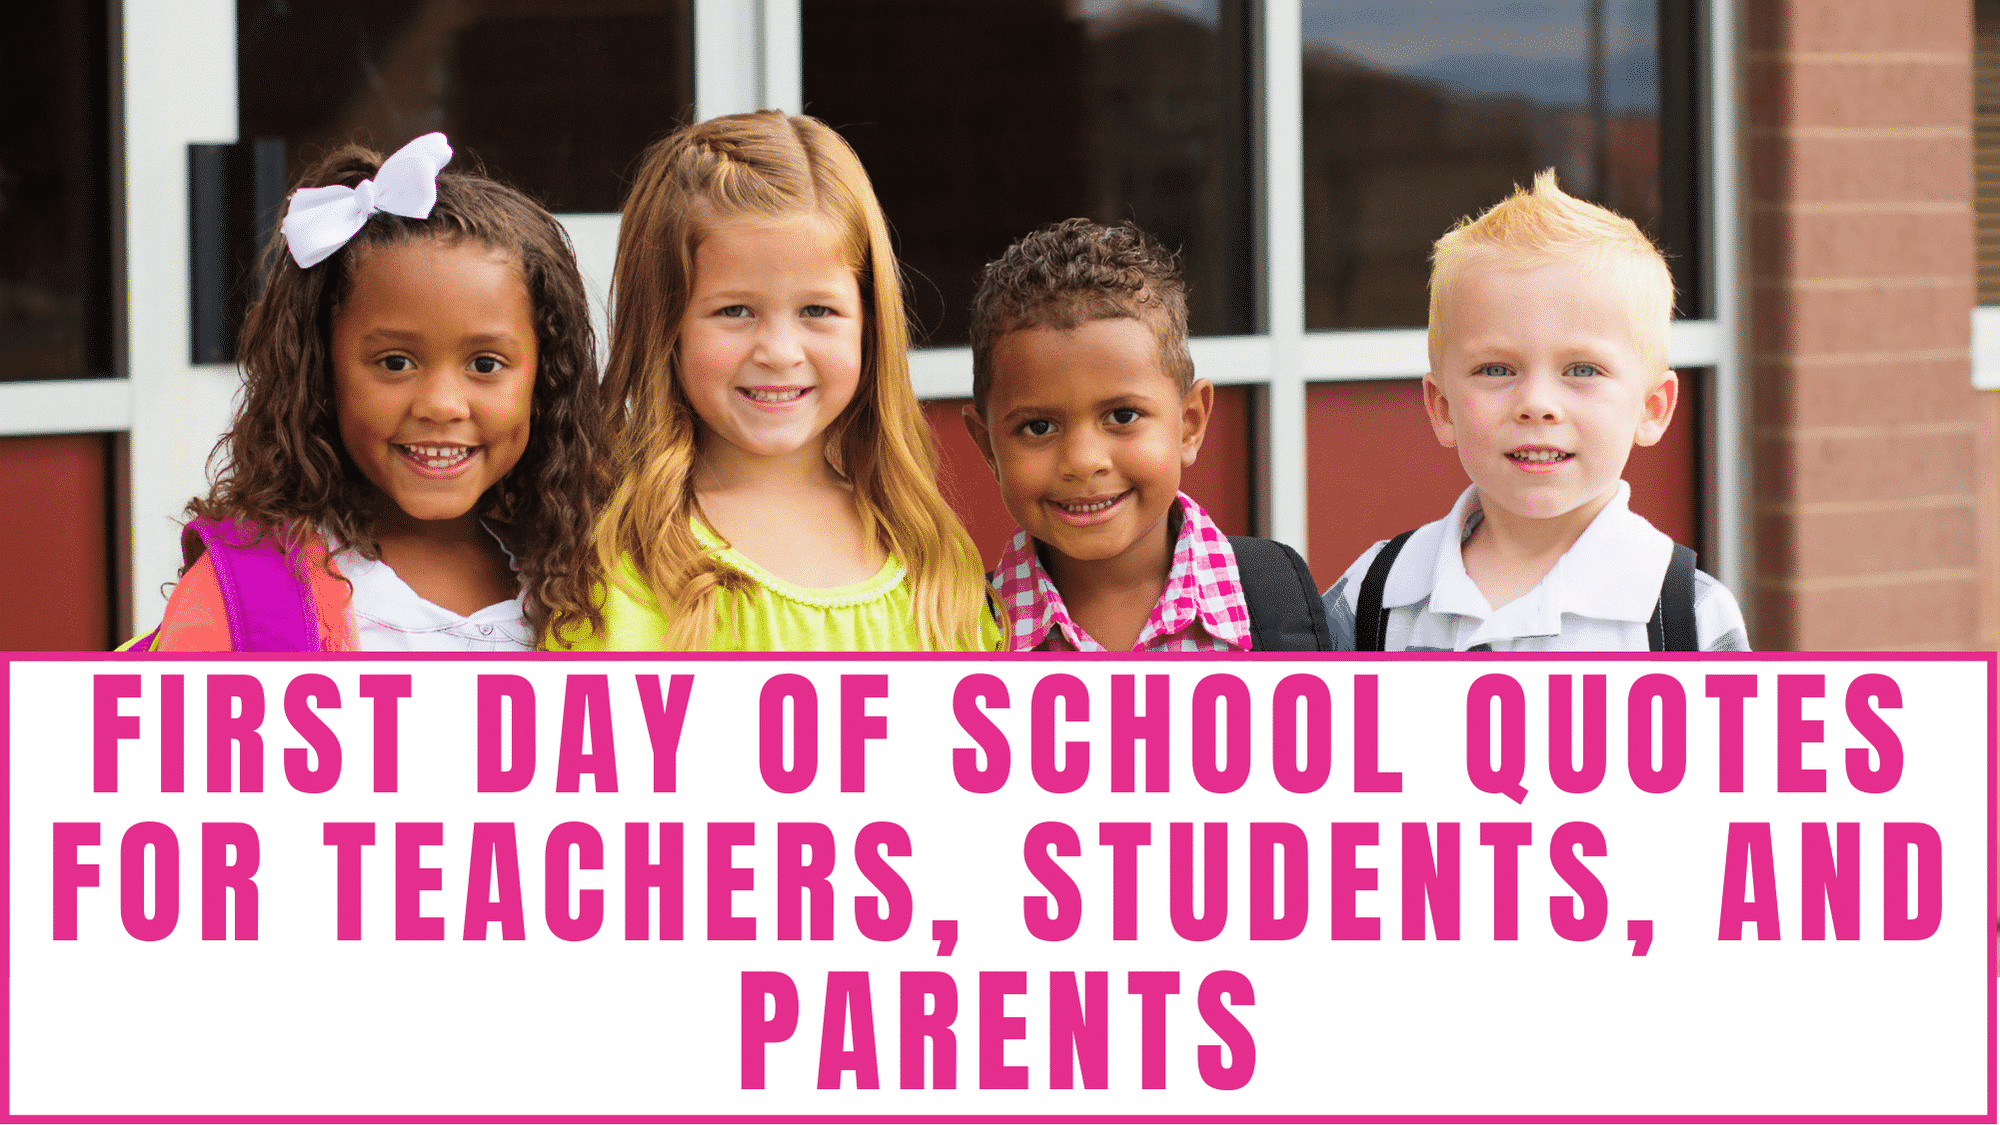 Are you and your kid ready for the first day of school? Whether you feel nervous or excited you'll find positive and funny quotes here on this list of first day of school quotes for teachers, students, and parents.